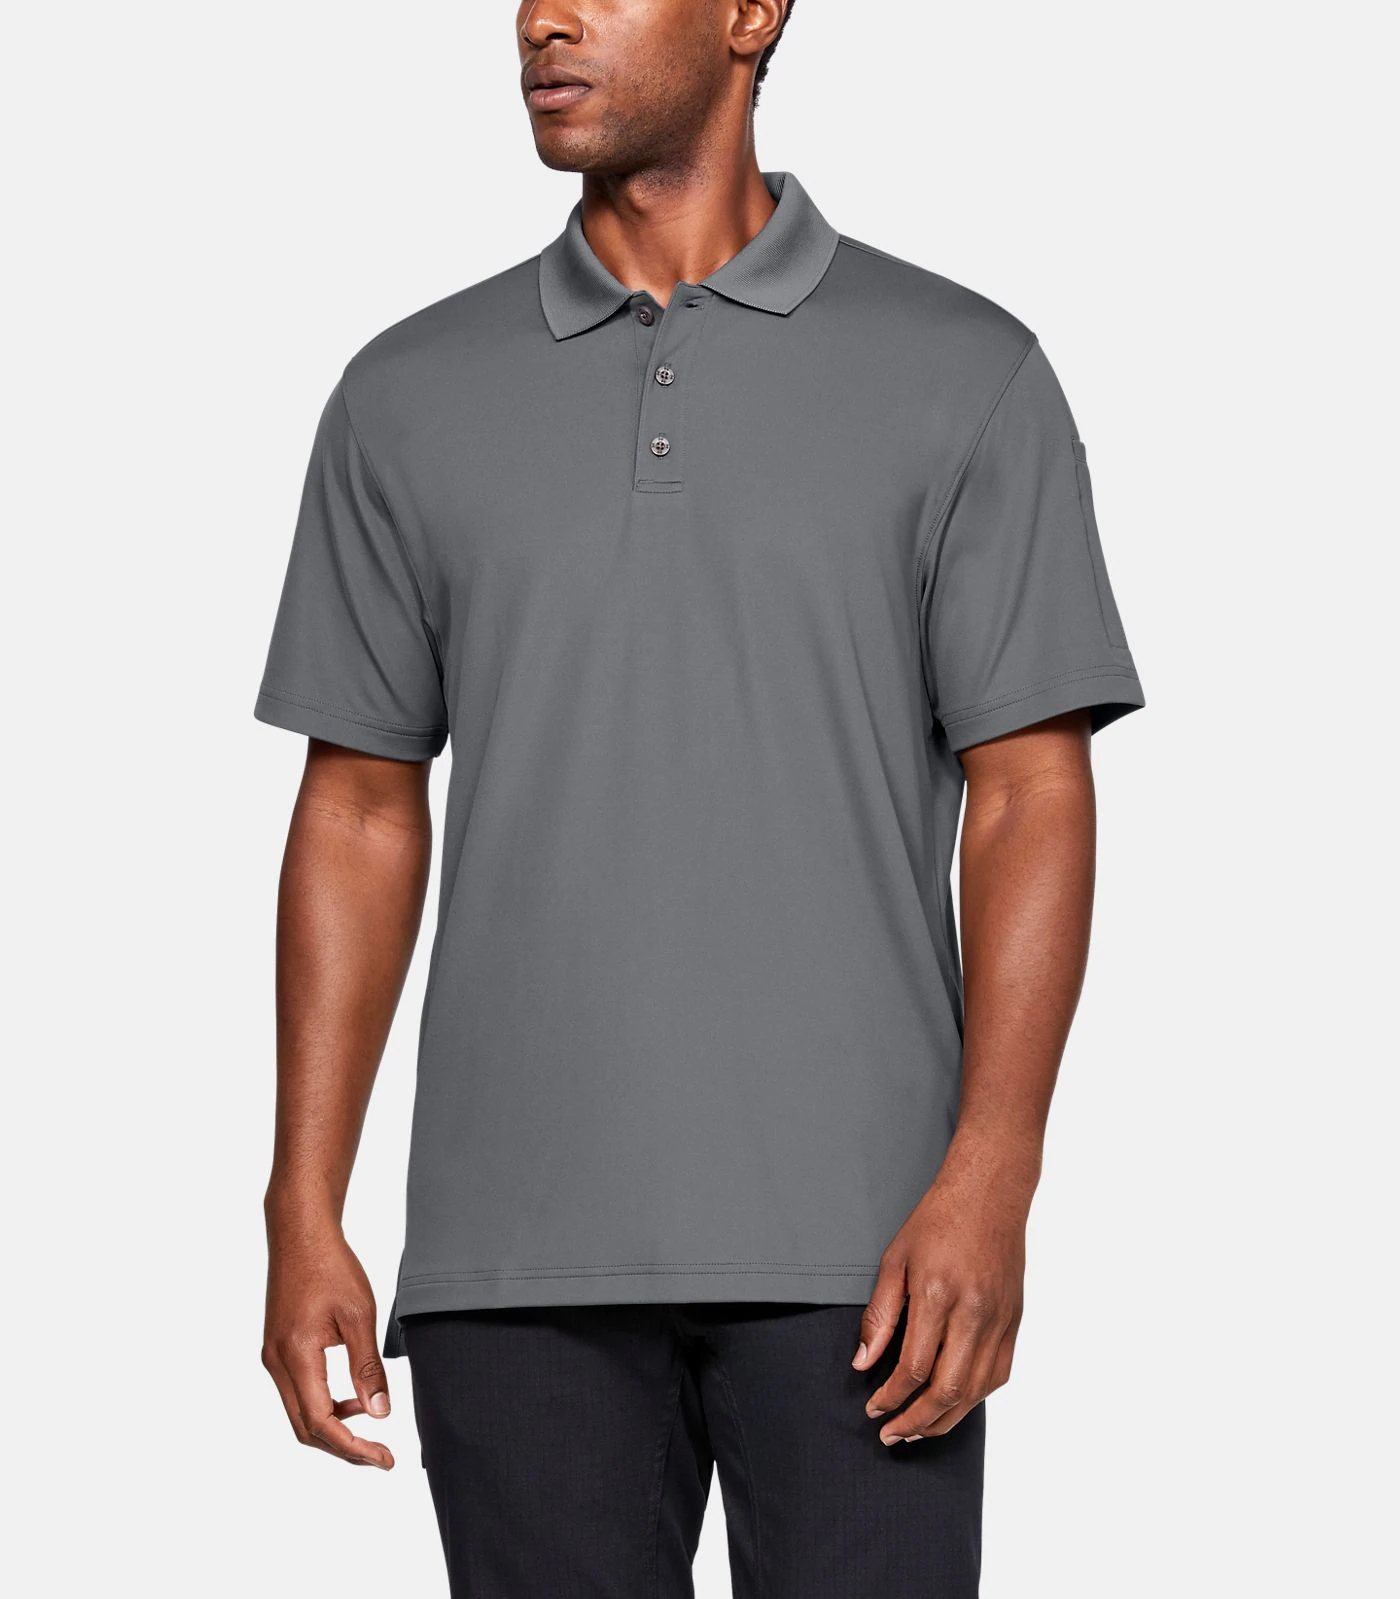 MENS_POLO_TacPerformance-SS_UAR1279759040_08